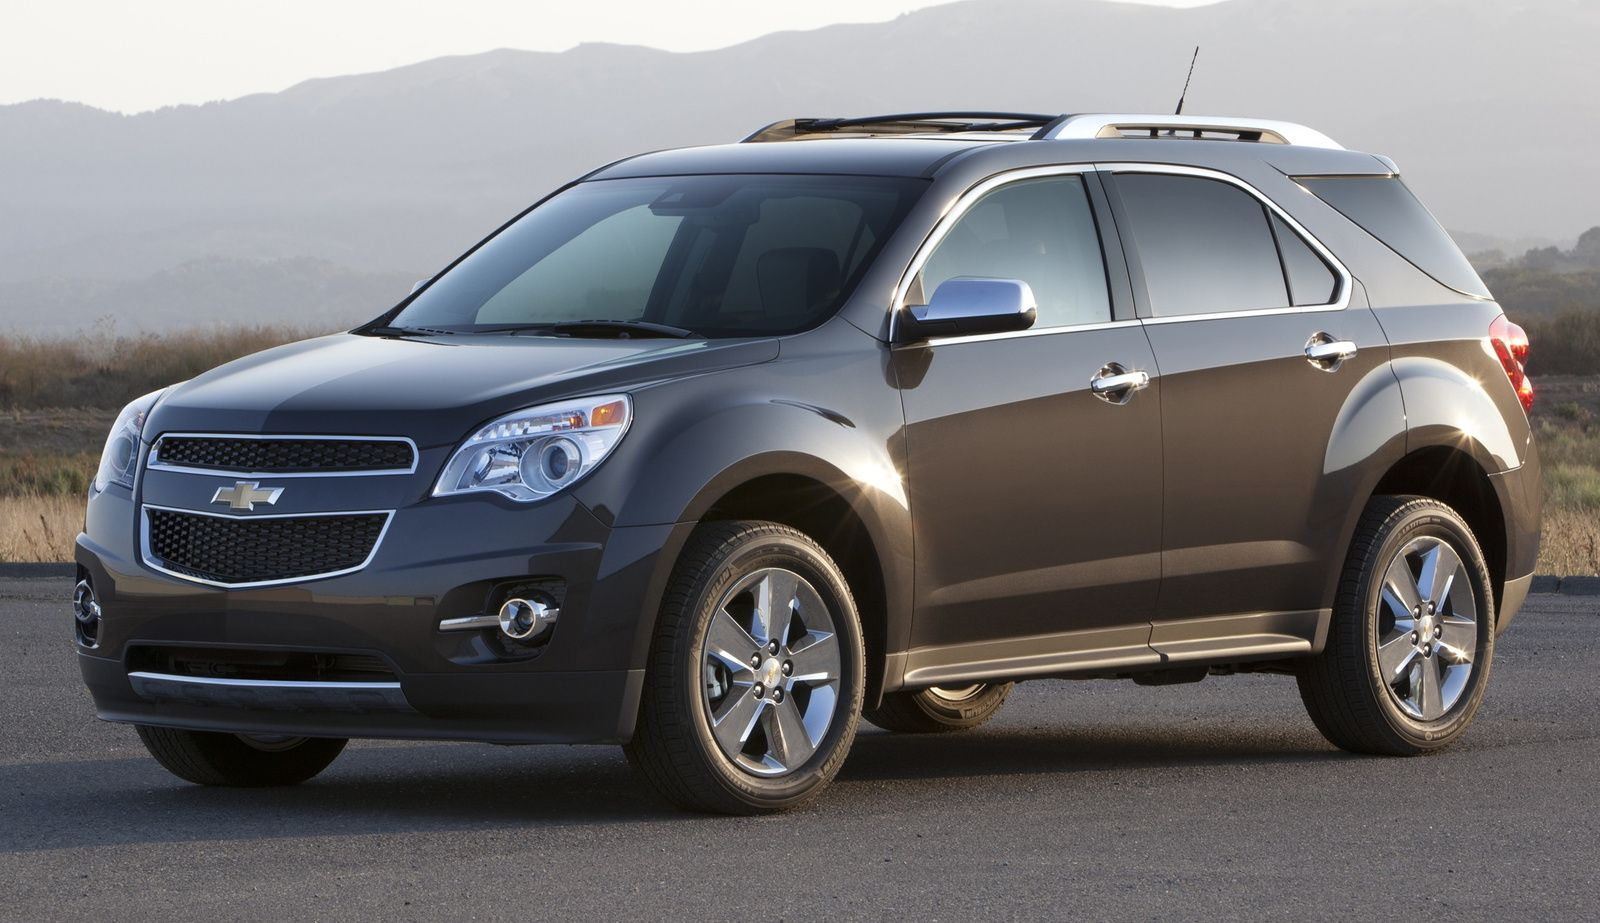 The 2015 Chevrolet Equinox Awd Lt A New Crossover Utility Vehicle